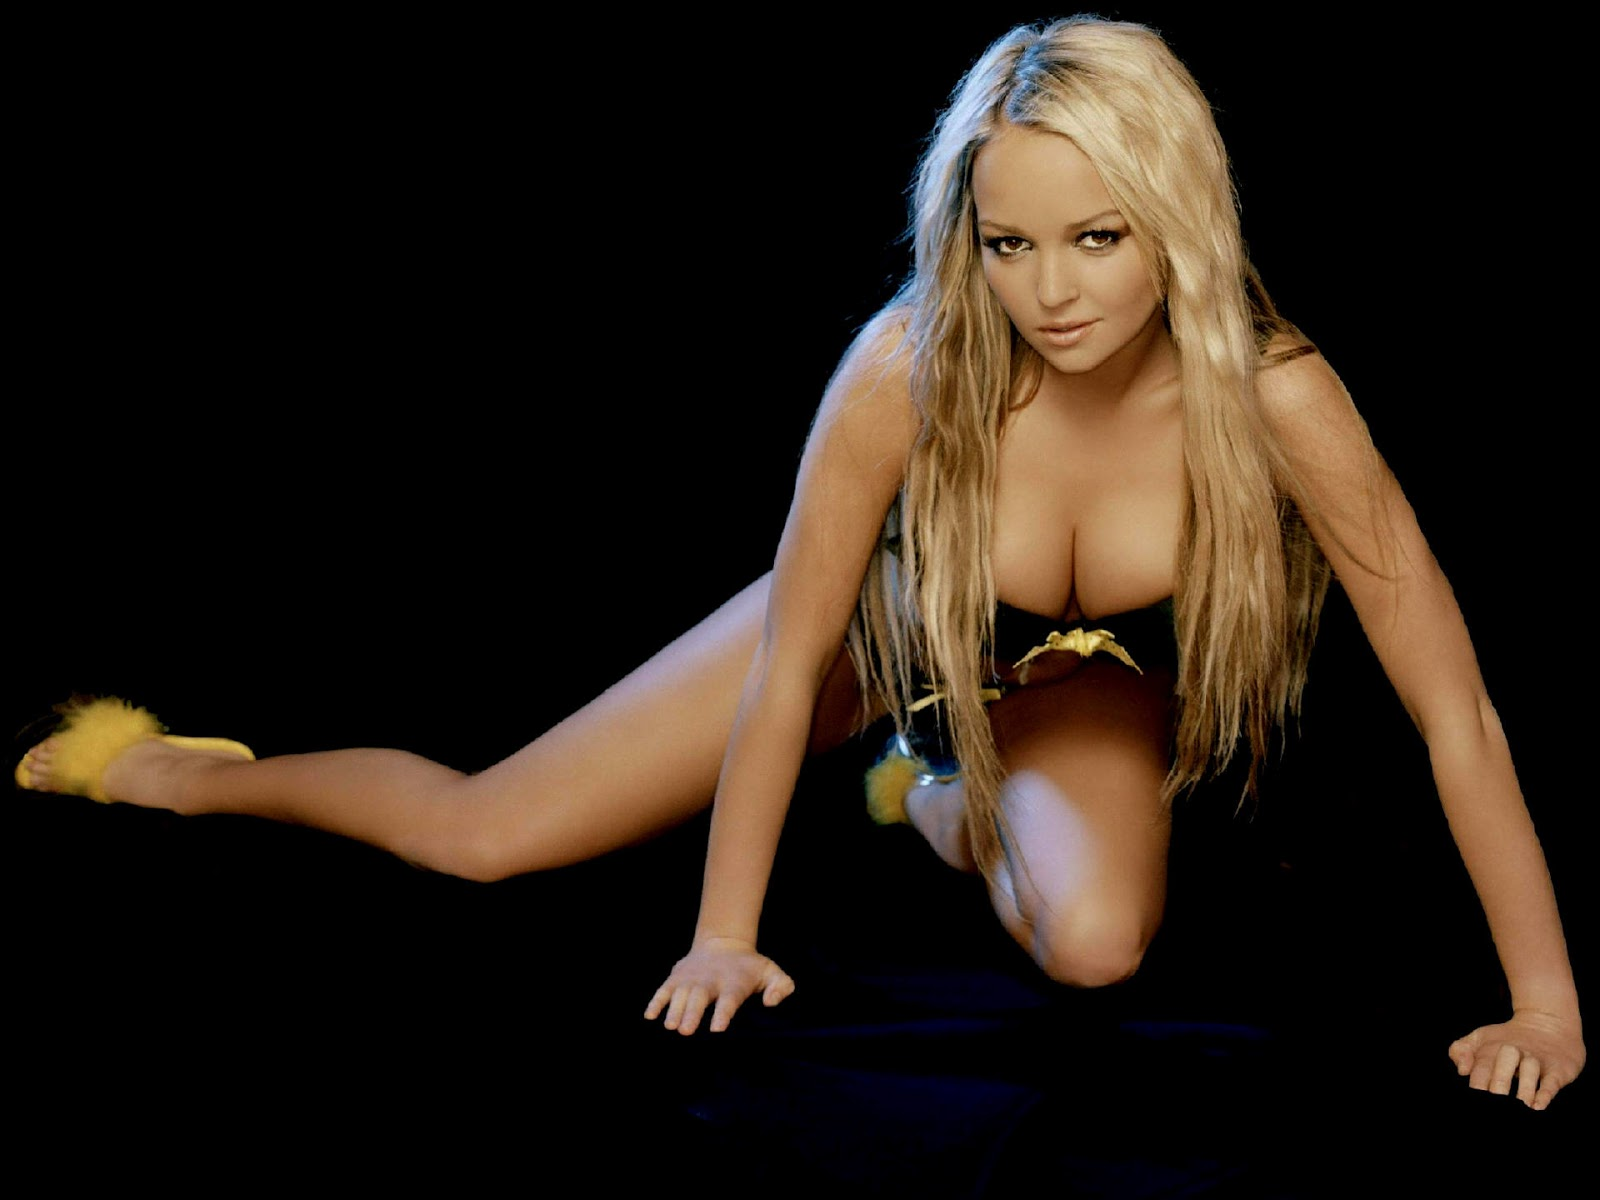 Jennifer ellison exotic nude breasts and lovely ass